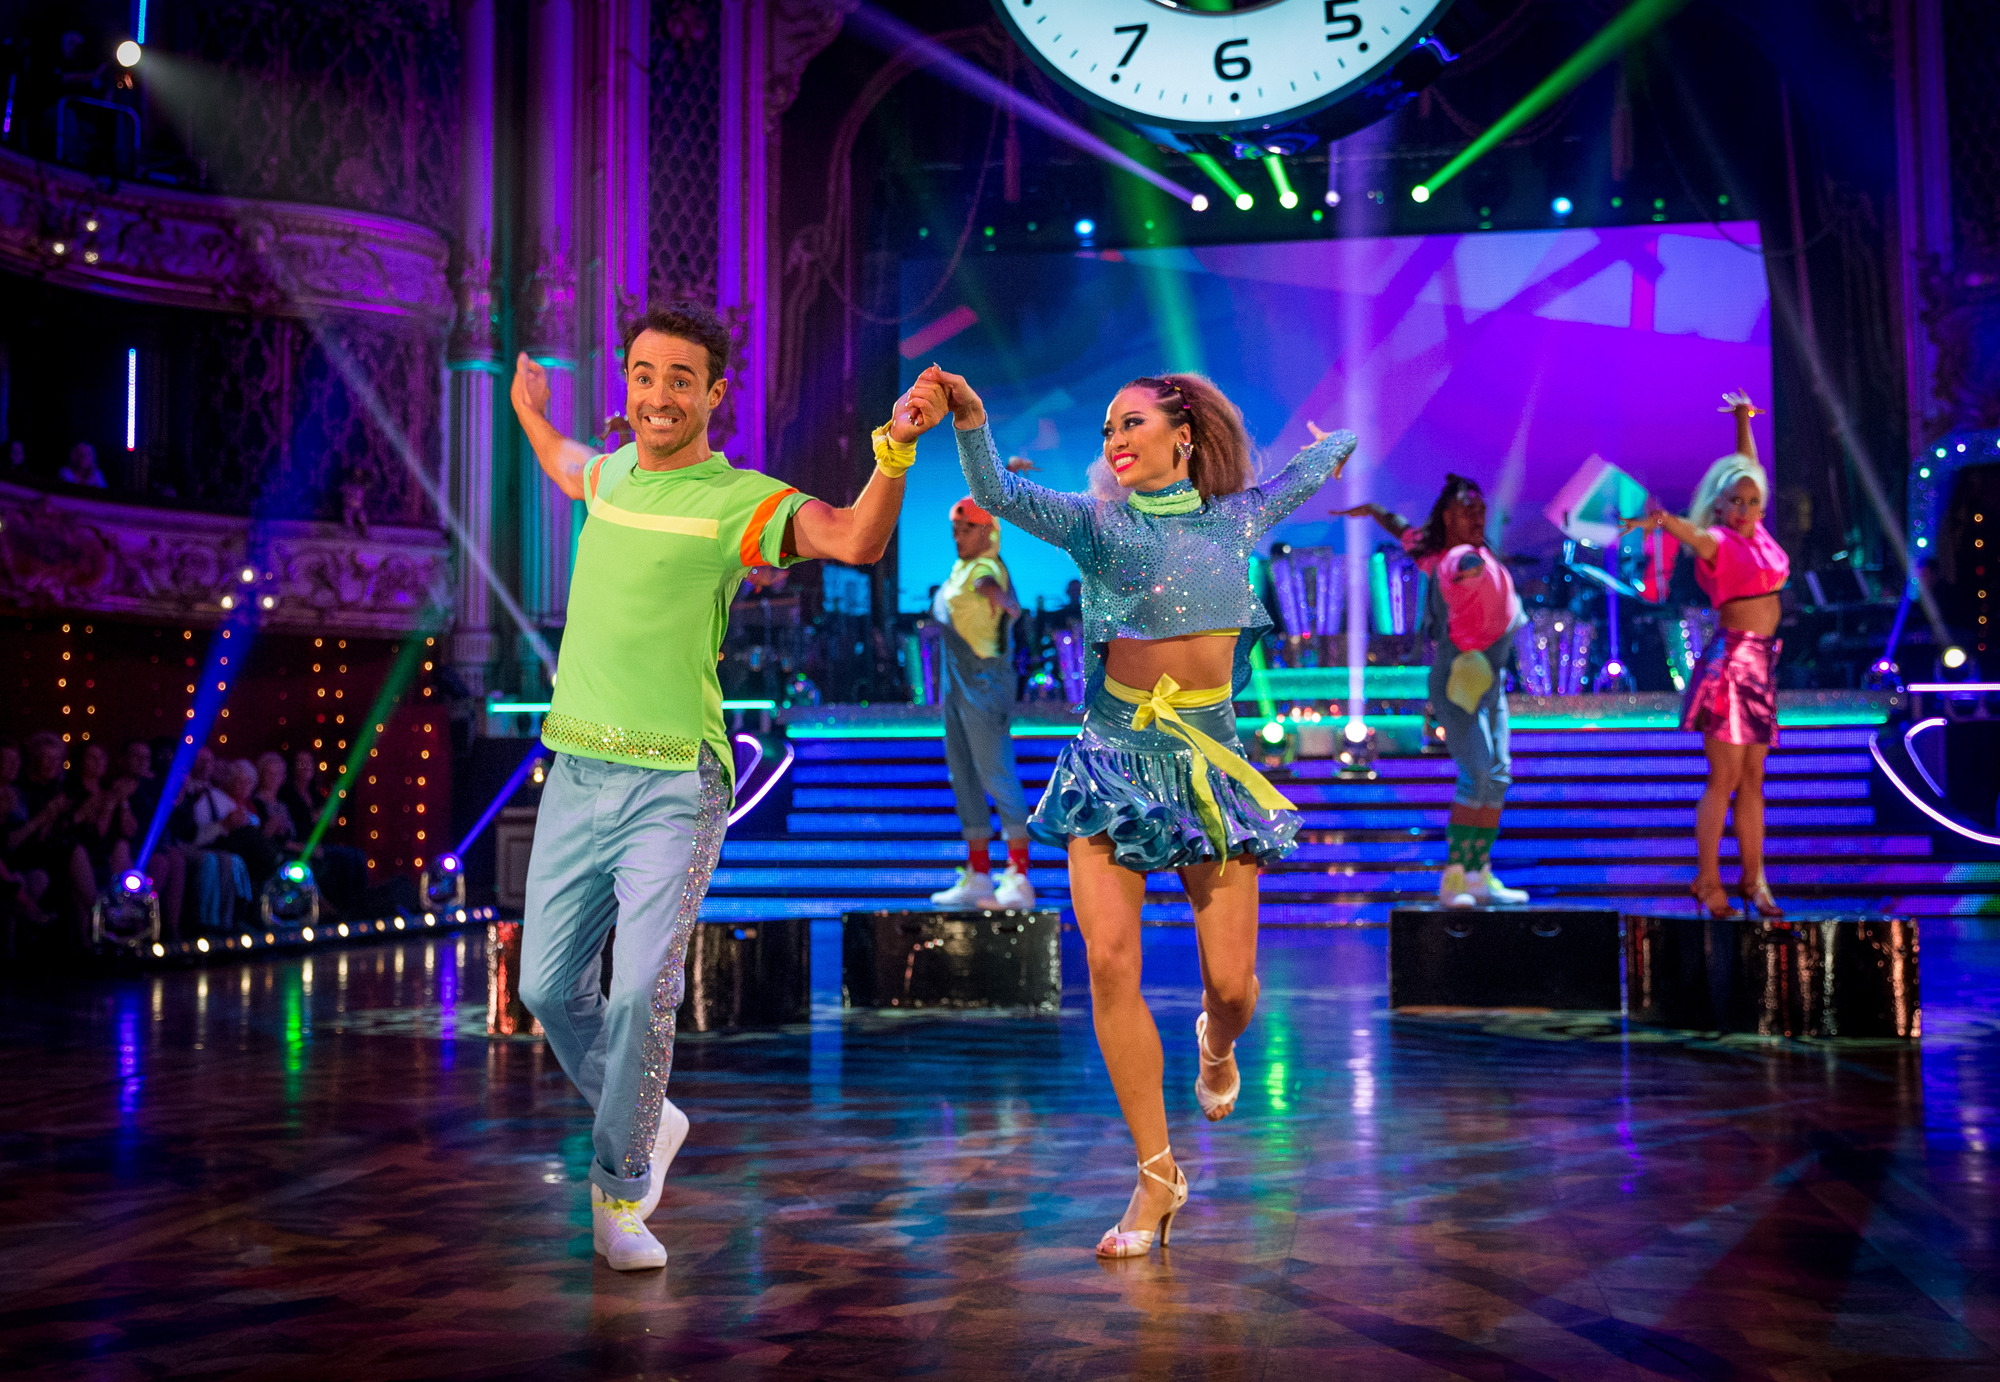 Joe McFadden in Strictly Come Dancing